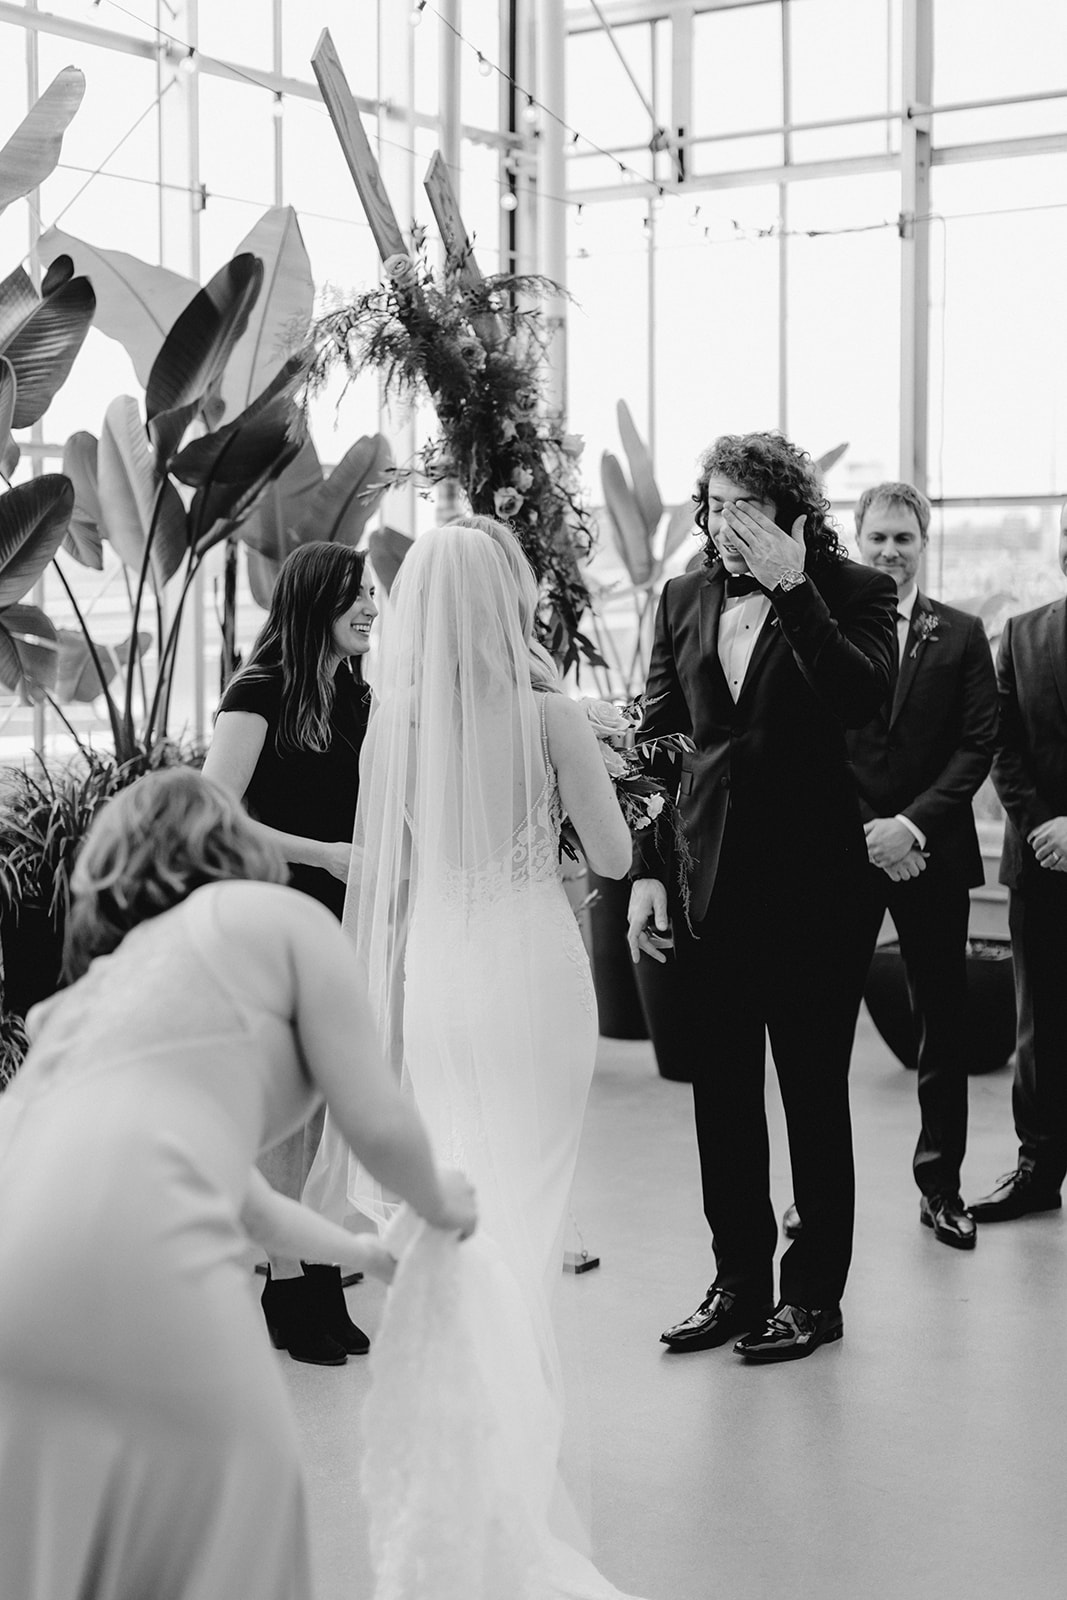 A groom crying as he reads his vows